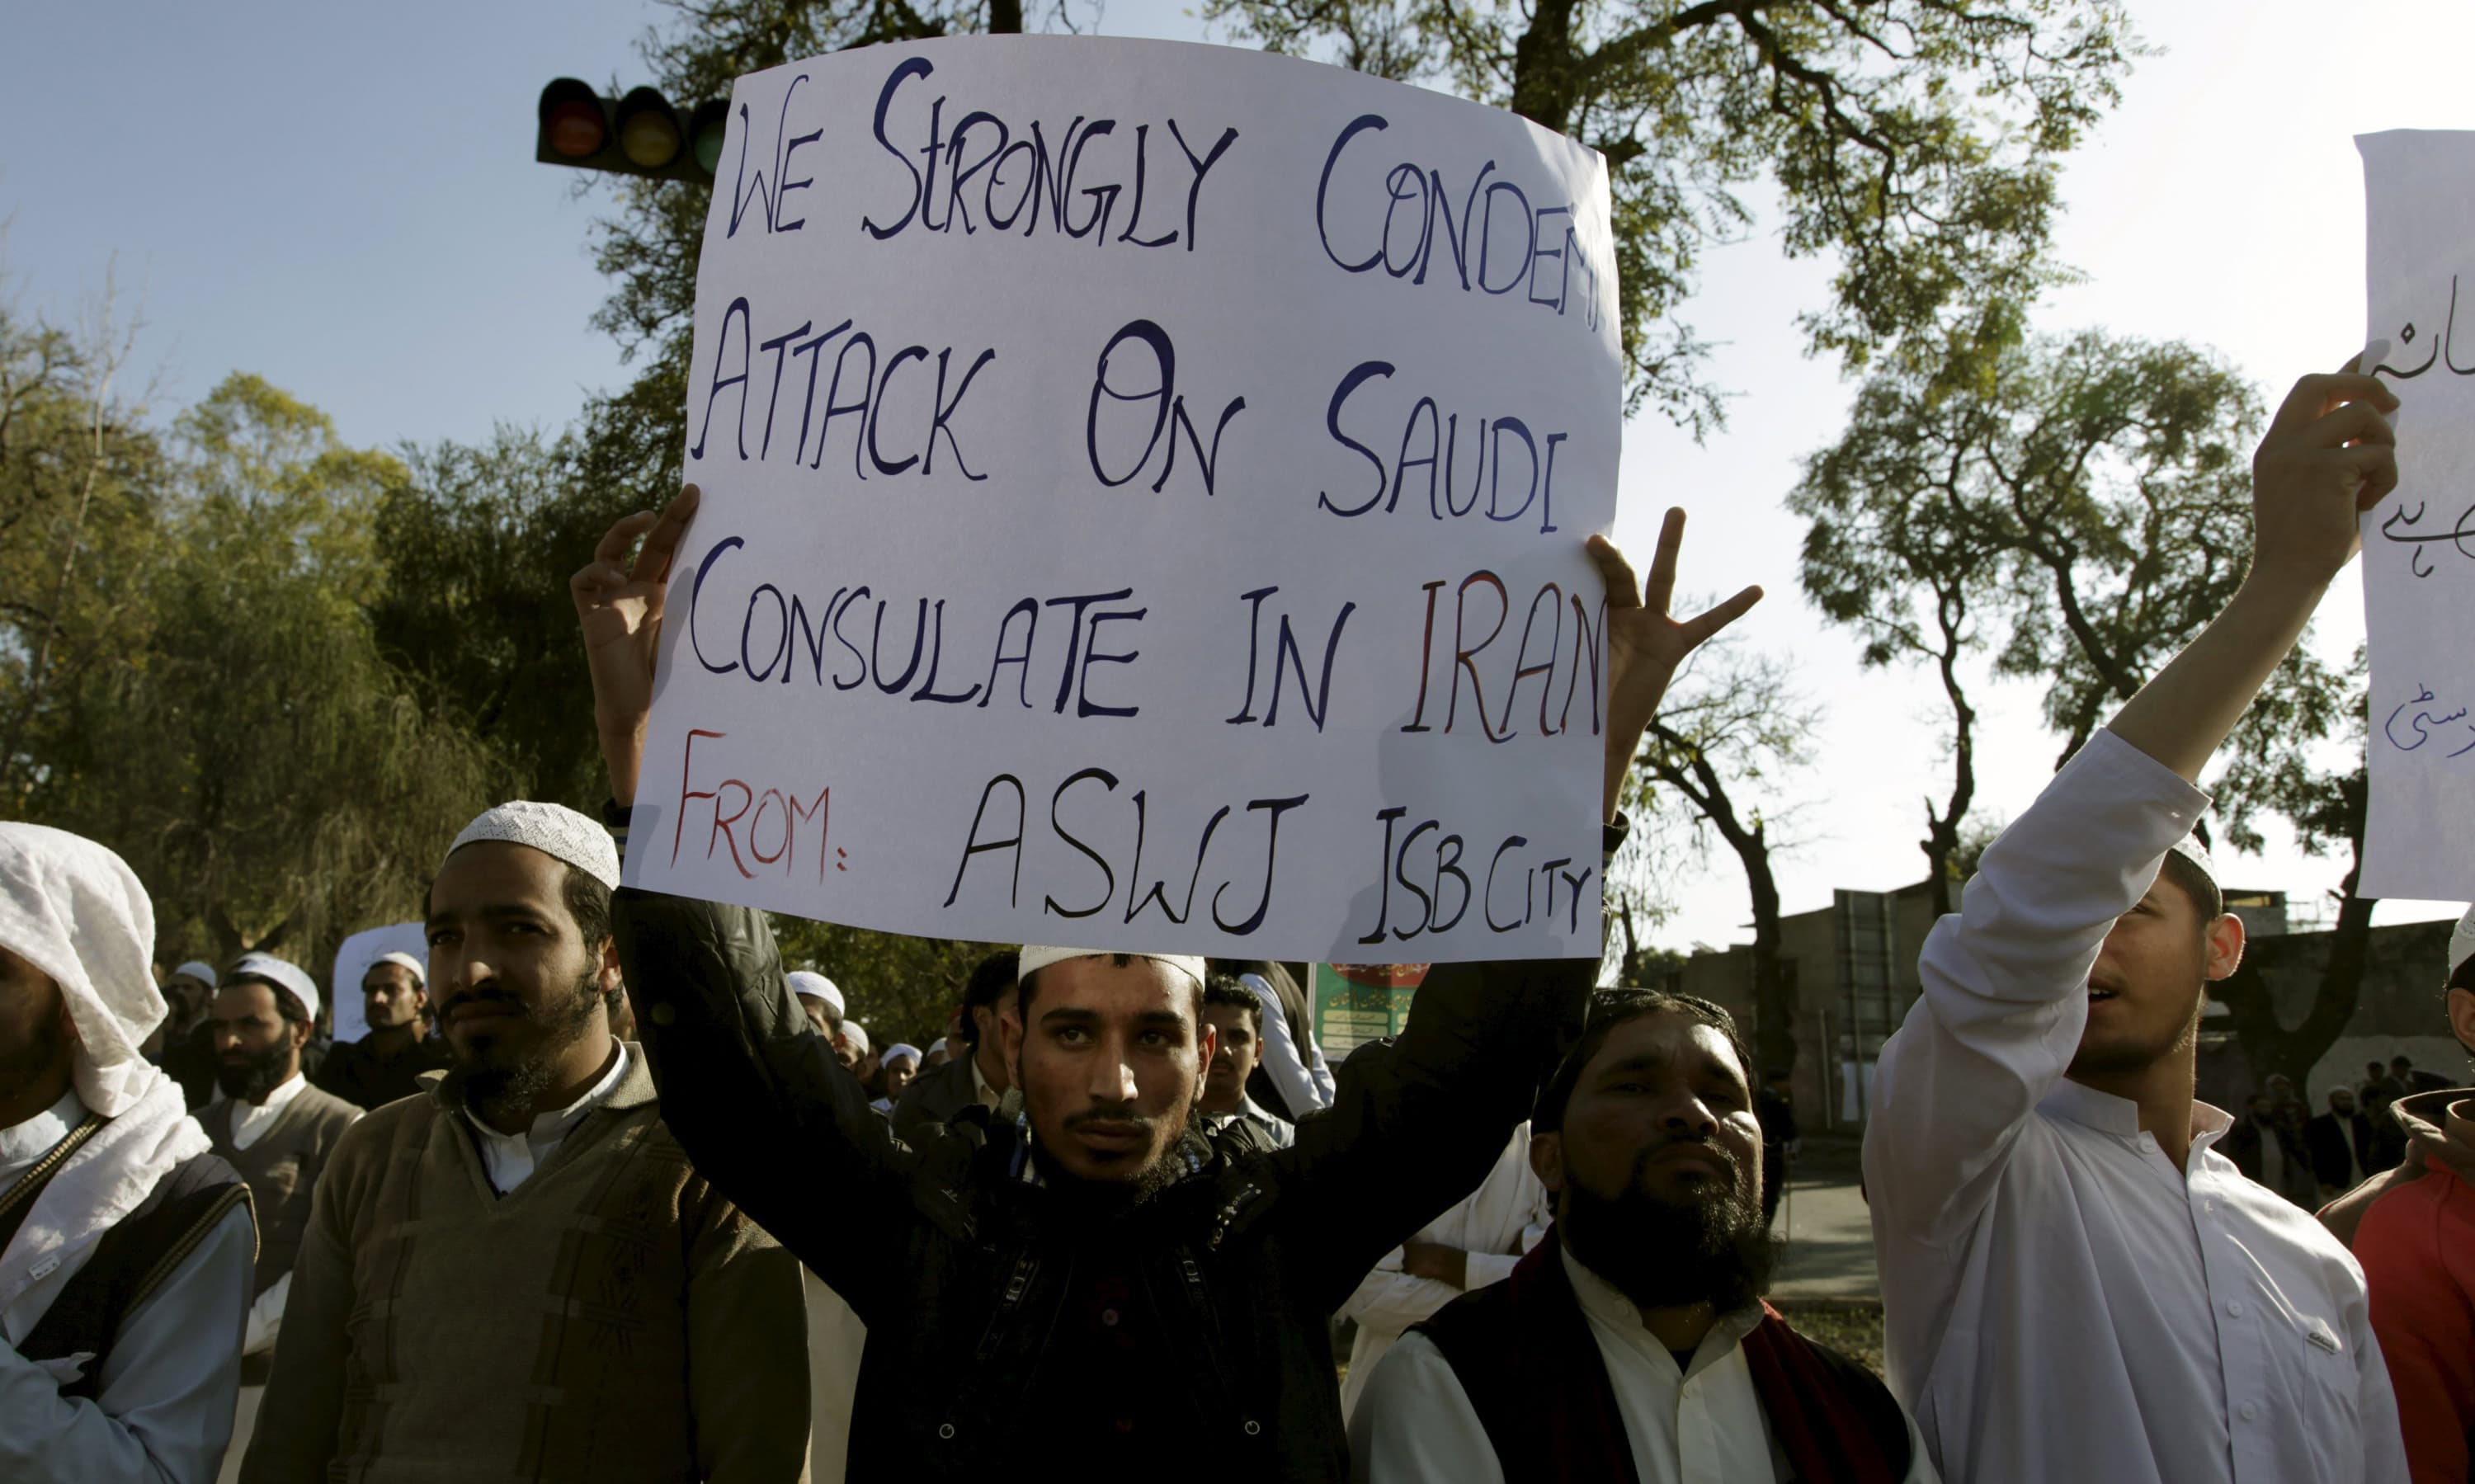 An ASWJ supporter  holds a placard to condemn the attack on Saudi consulate in Iran. —Reuters